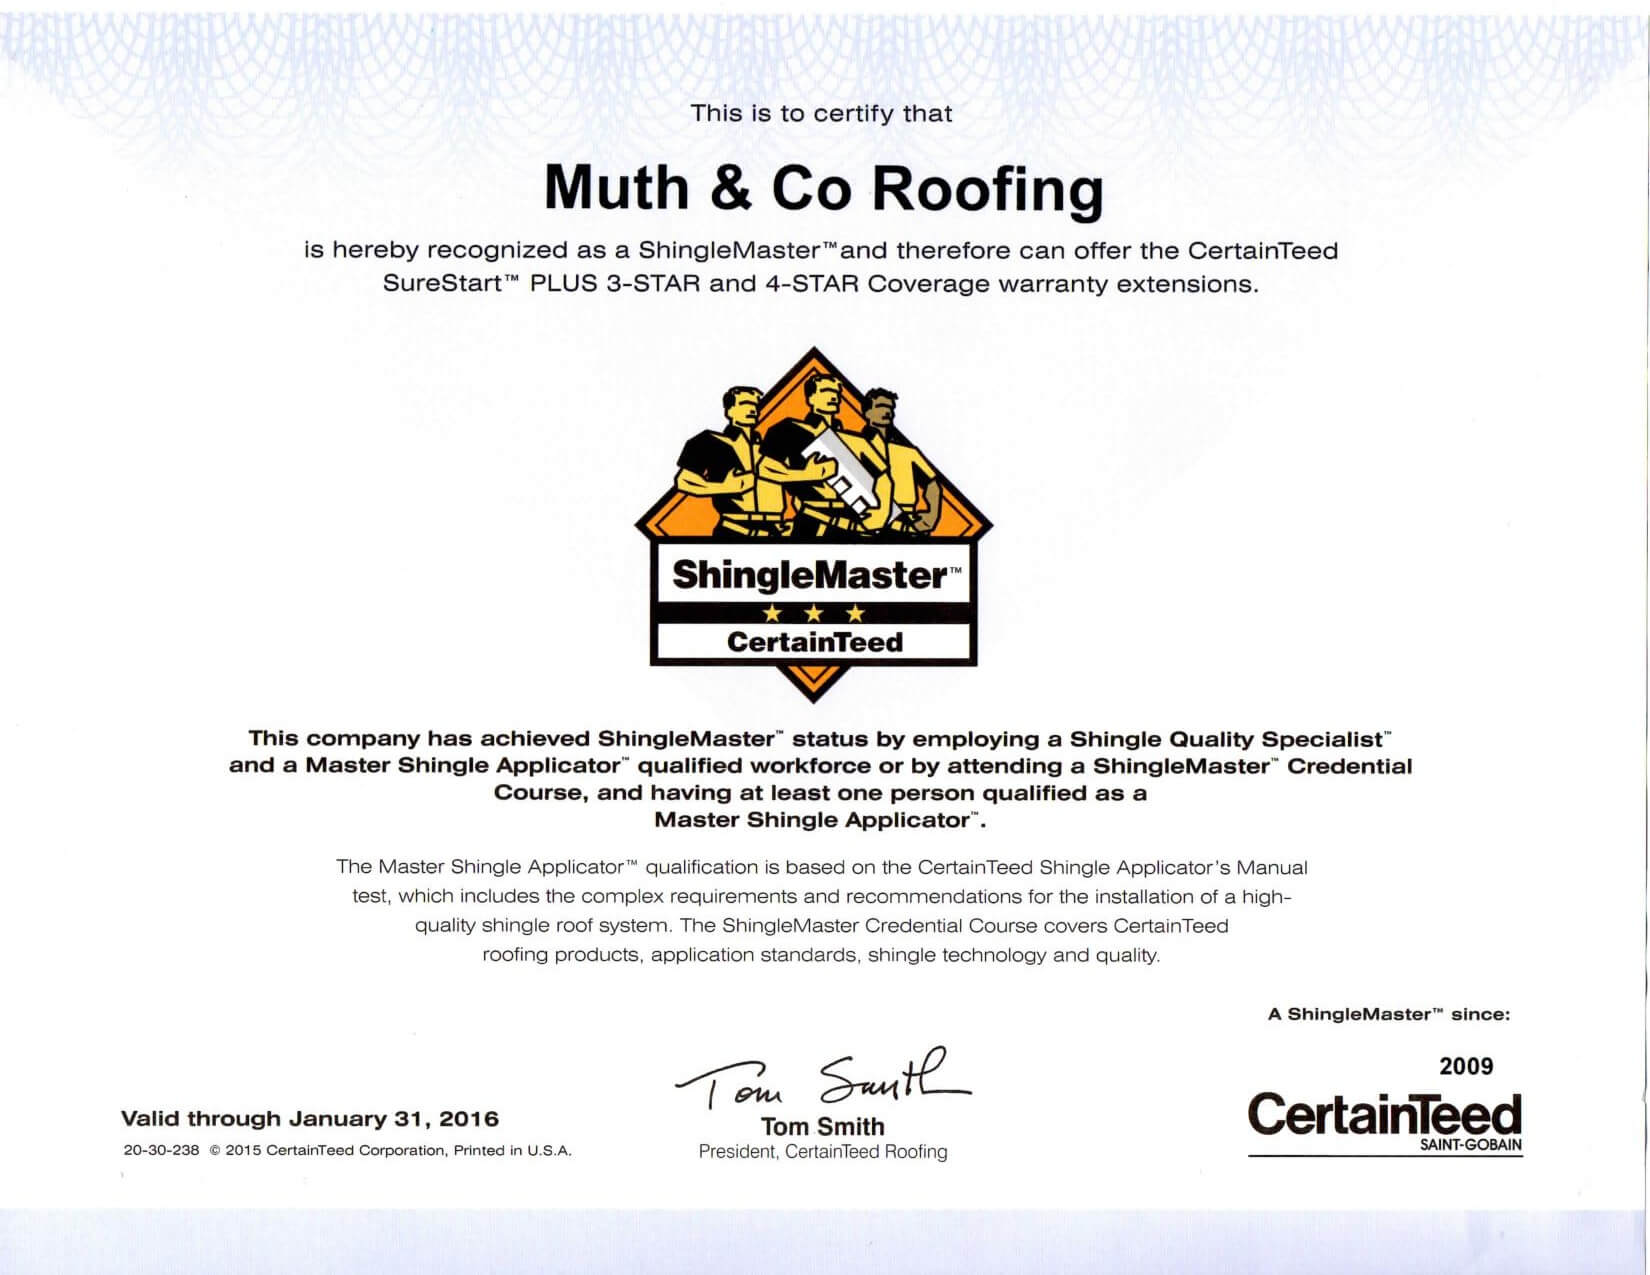 Certainteed ShingleMaster certificate through 1.31.16